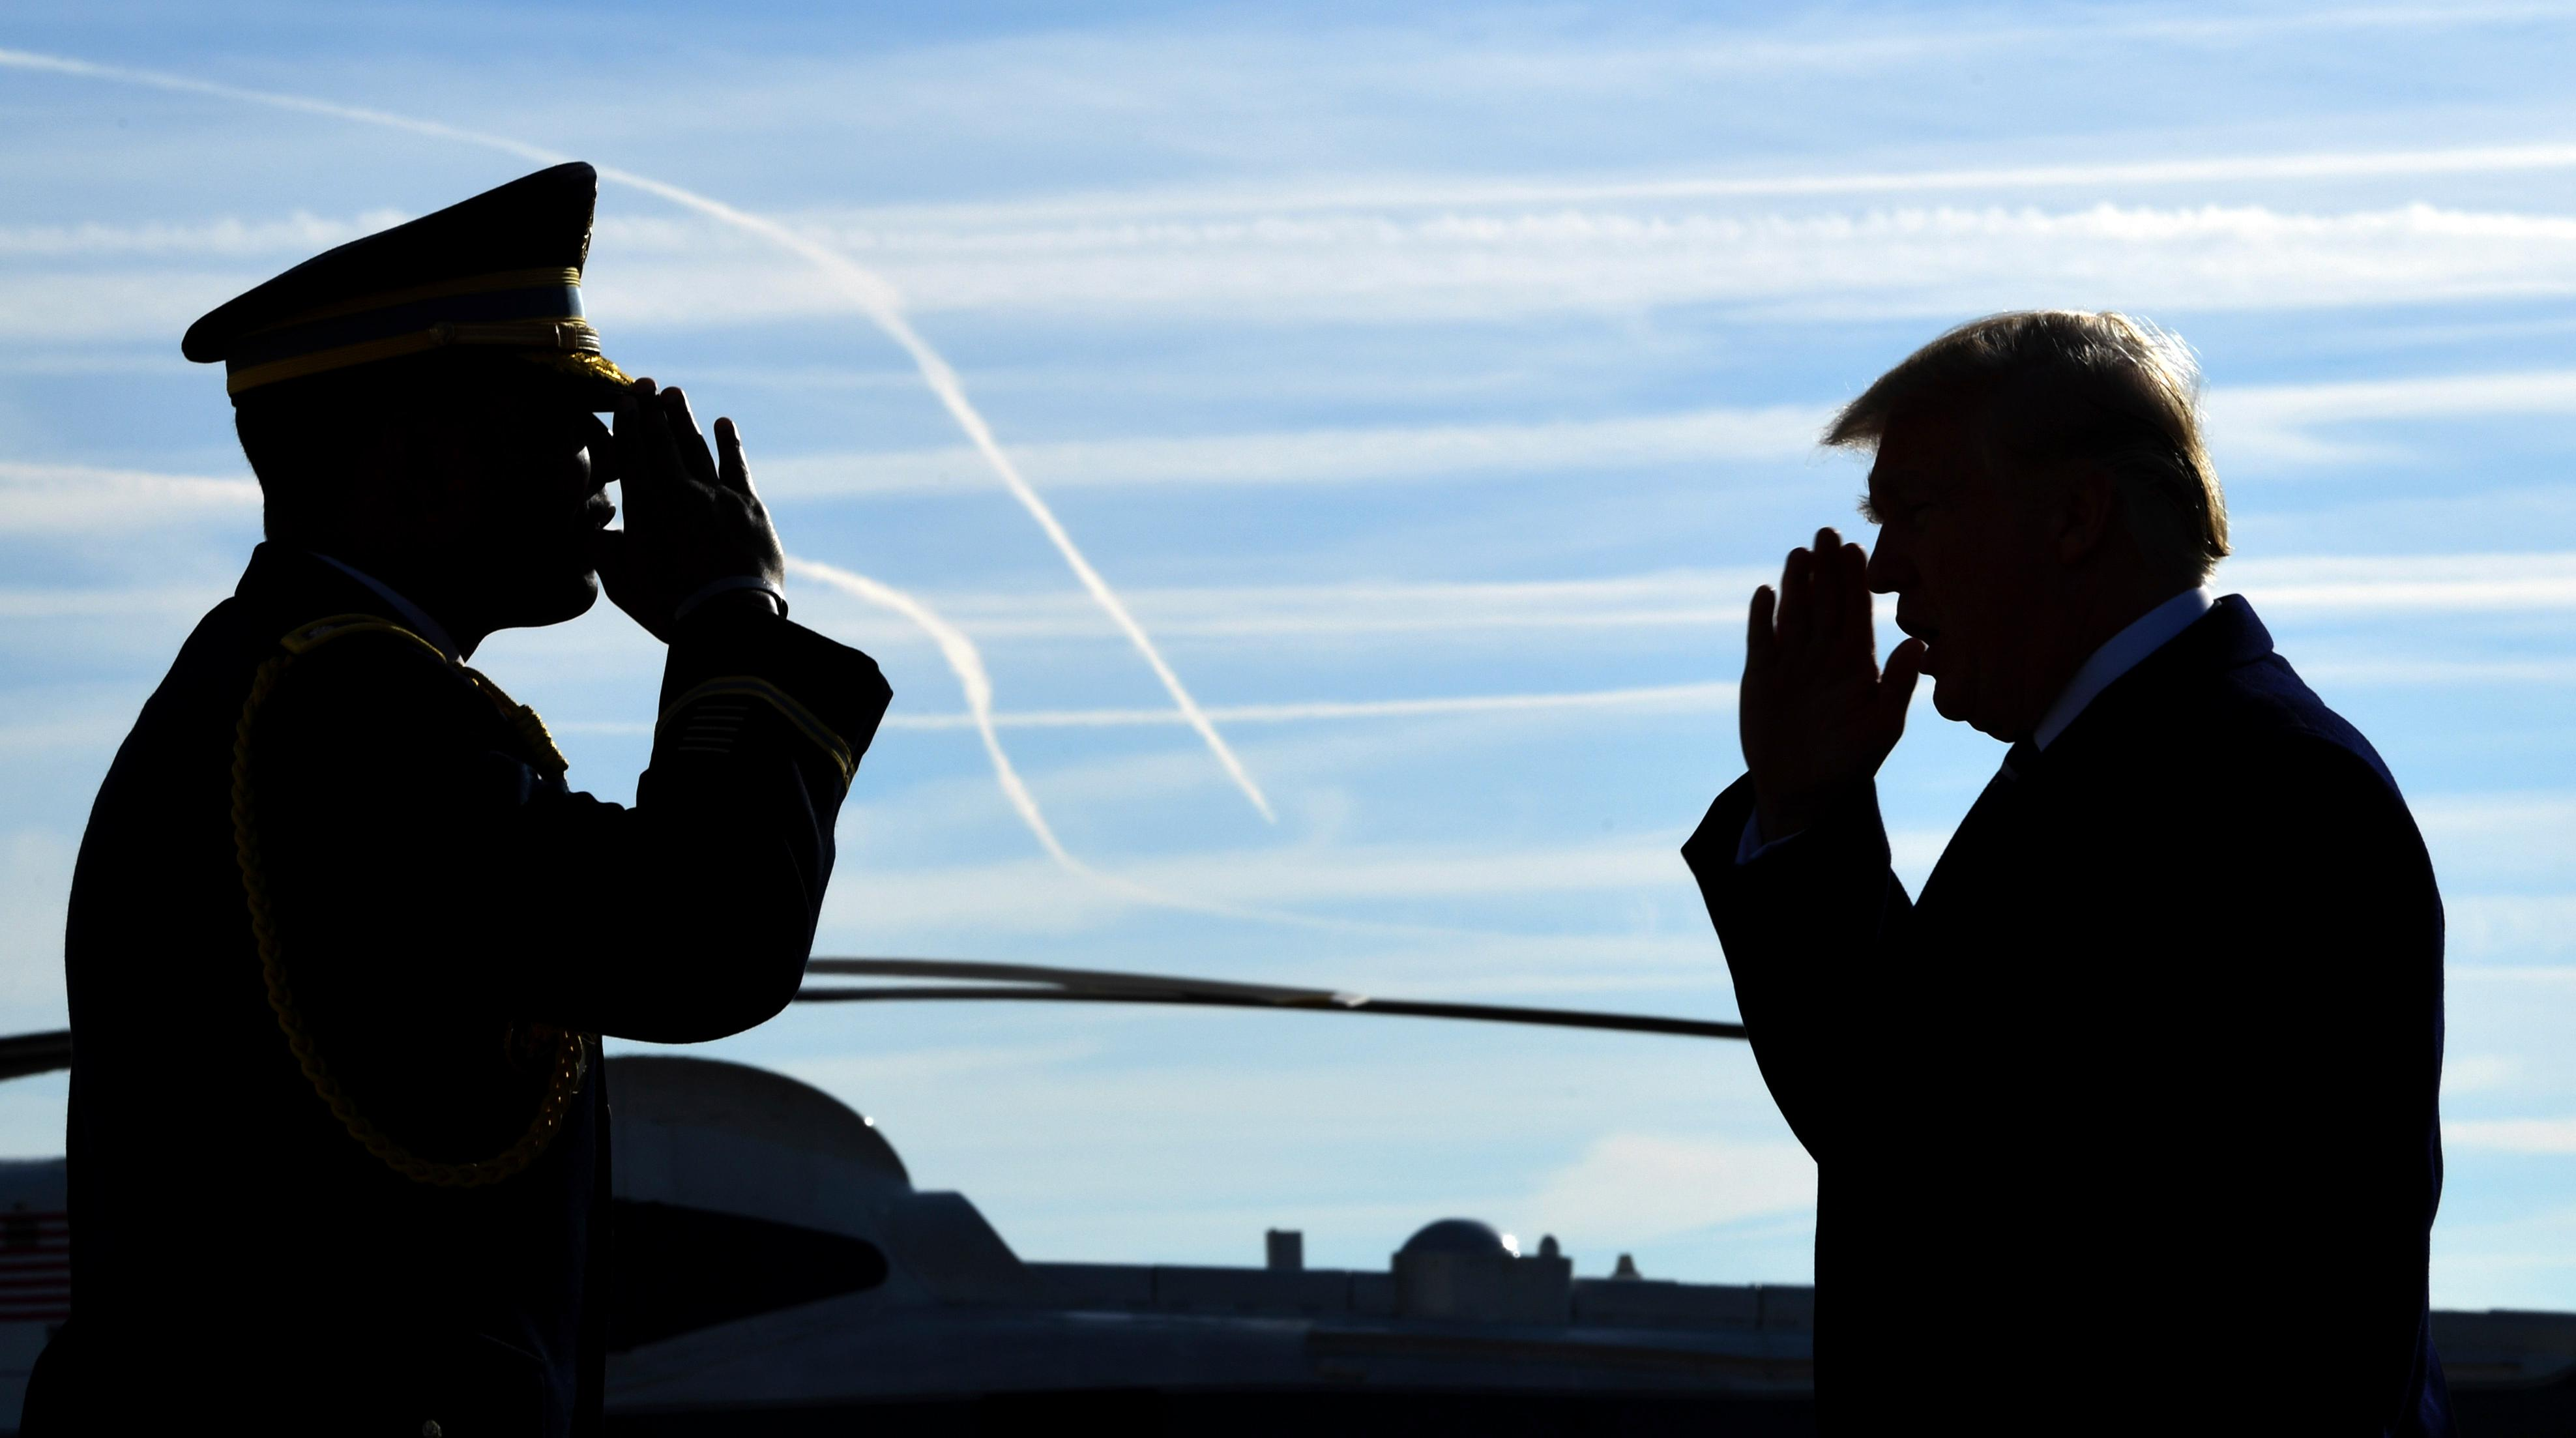 President Donald Trump is greeted with a salute as he walks down the steps of Air Force One at John F. Kennedy International Airport in New York, Saturday, Dec. 2, 2017. Trump is in New York to attend a series of fundraisers. (AP Photo/Susan Walsh)